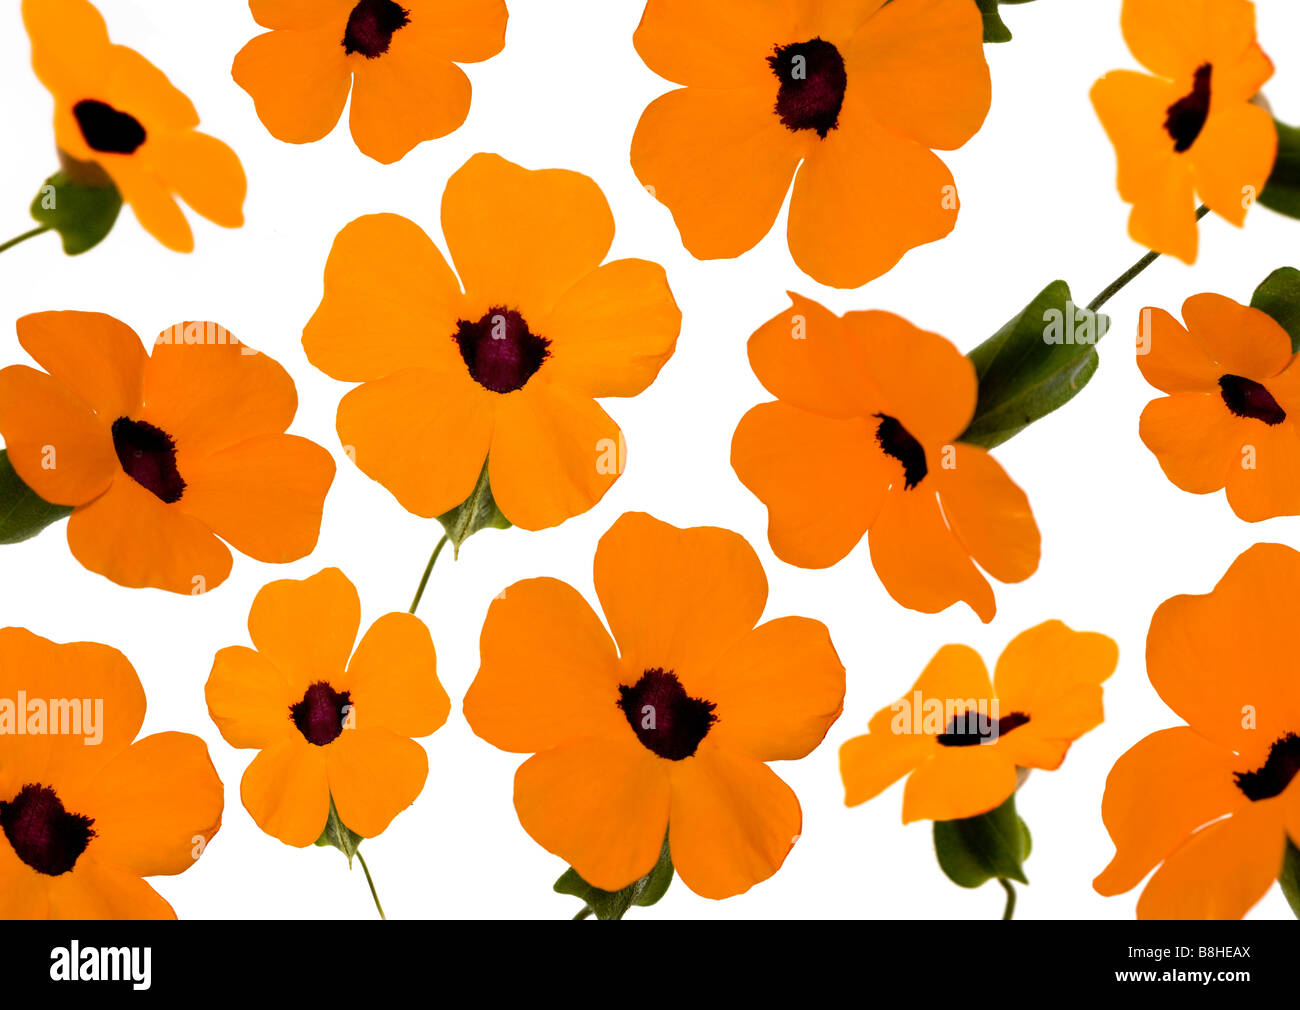 Photomontage of orange flowers - Stock Image